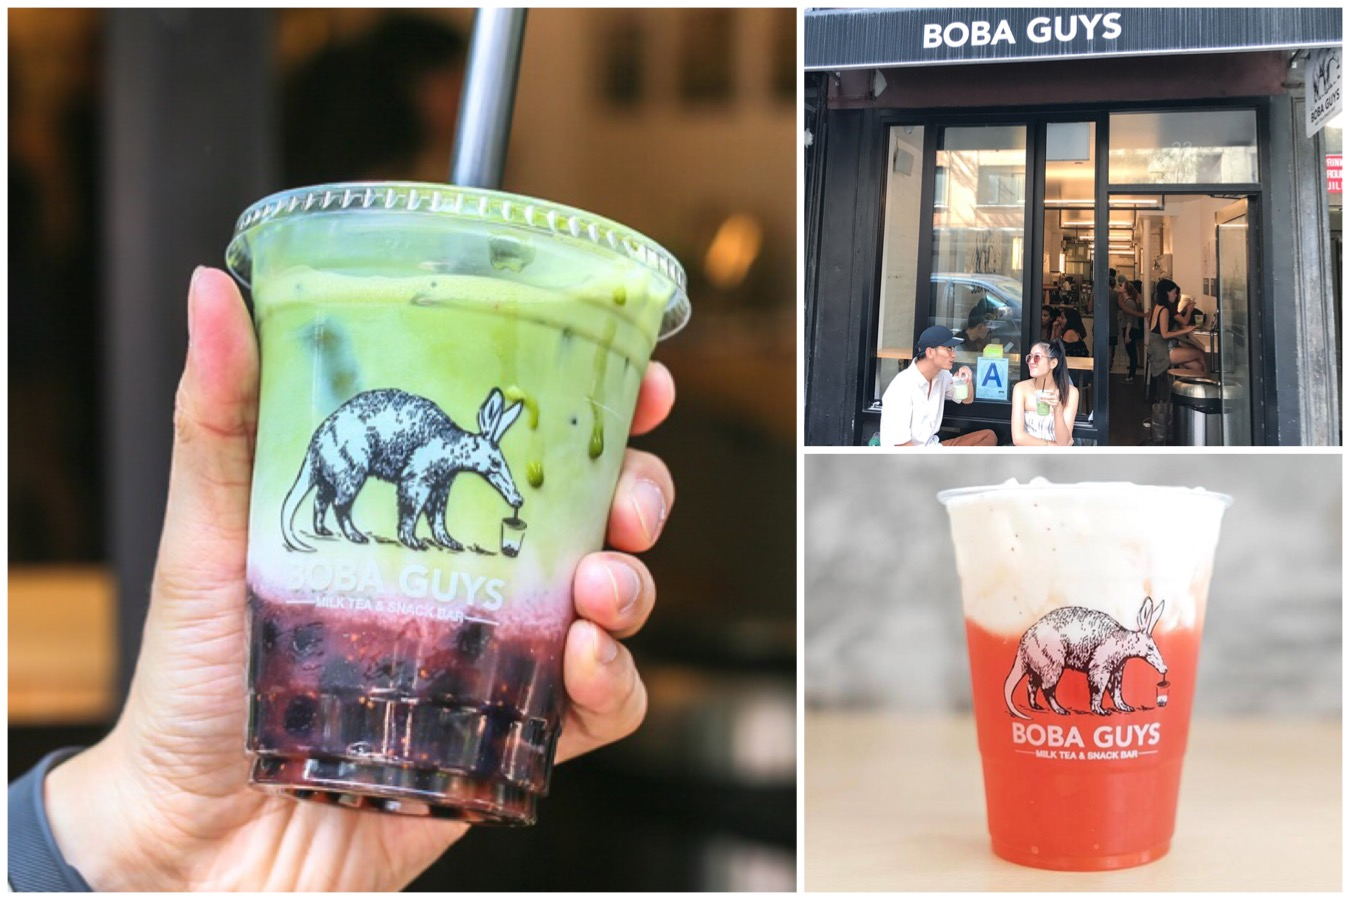 Boba Guys – Popular & Instagrammable Bubble Tea Which Use